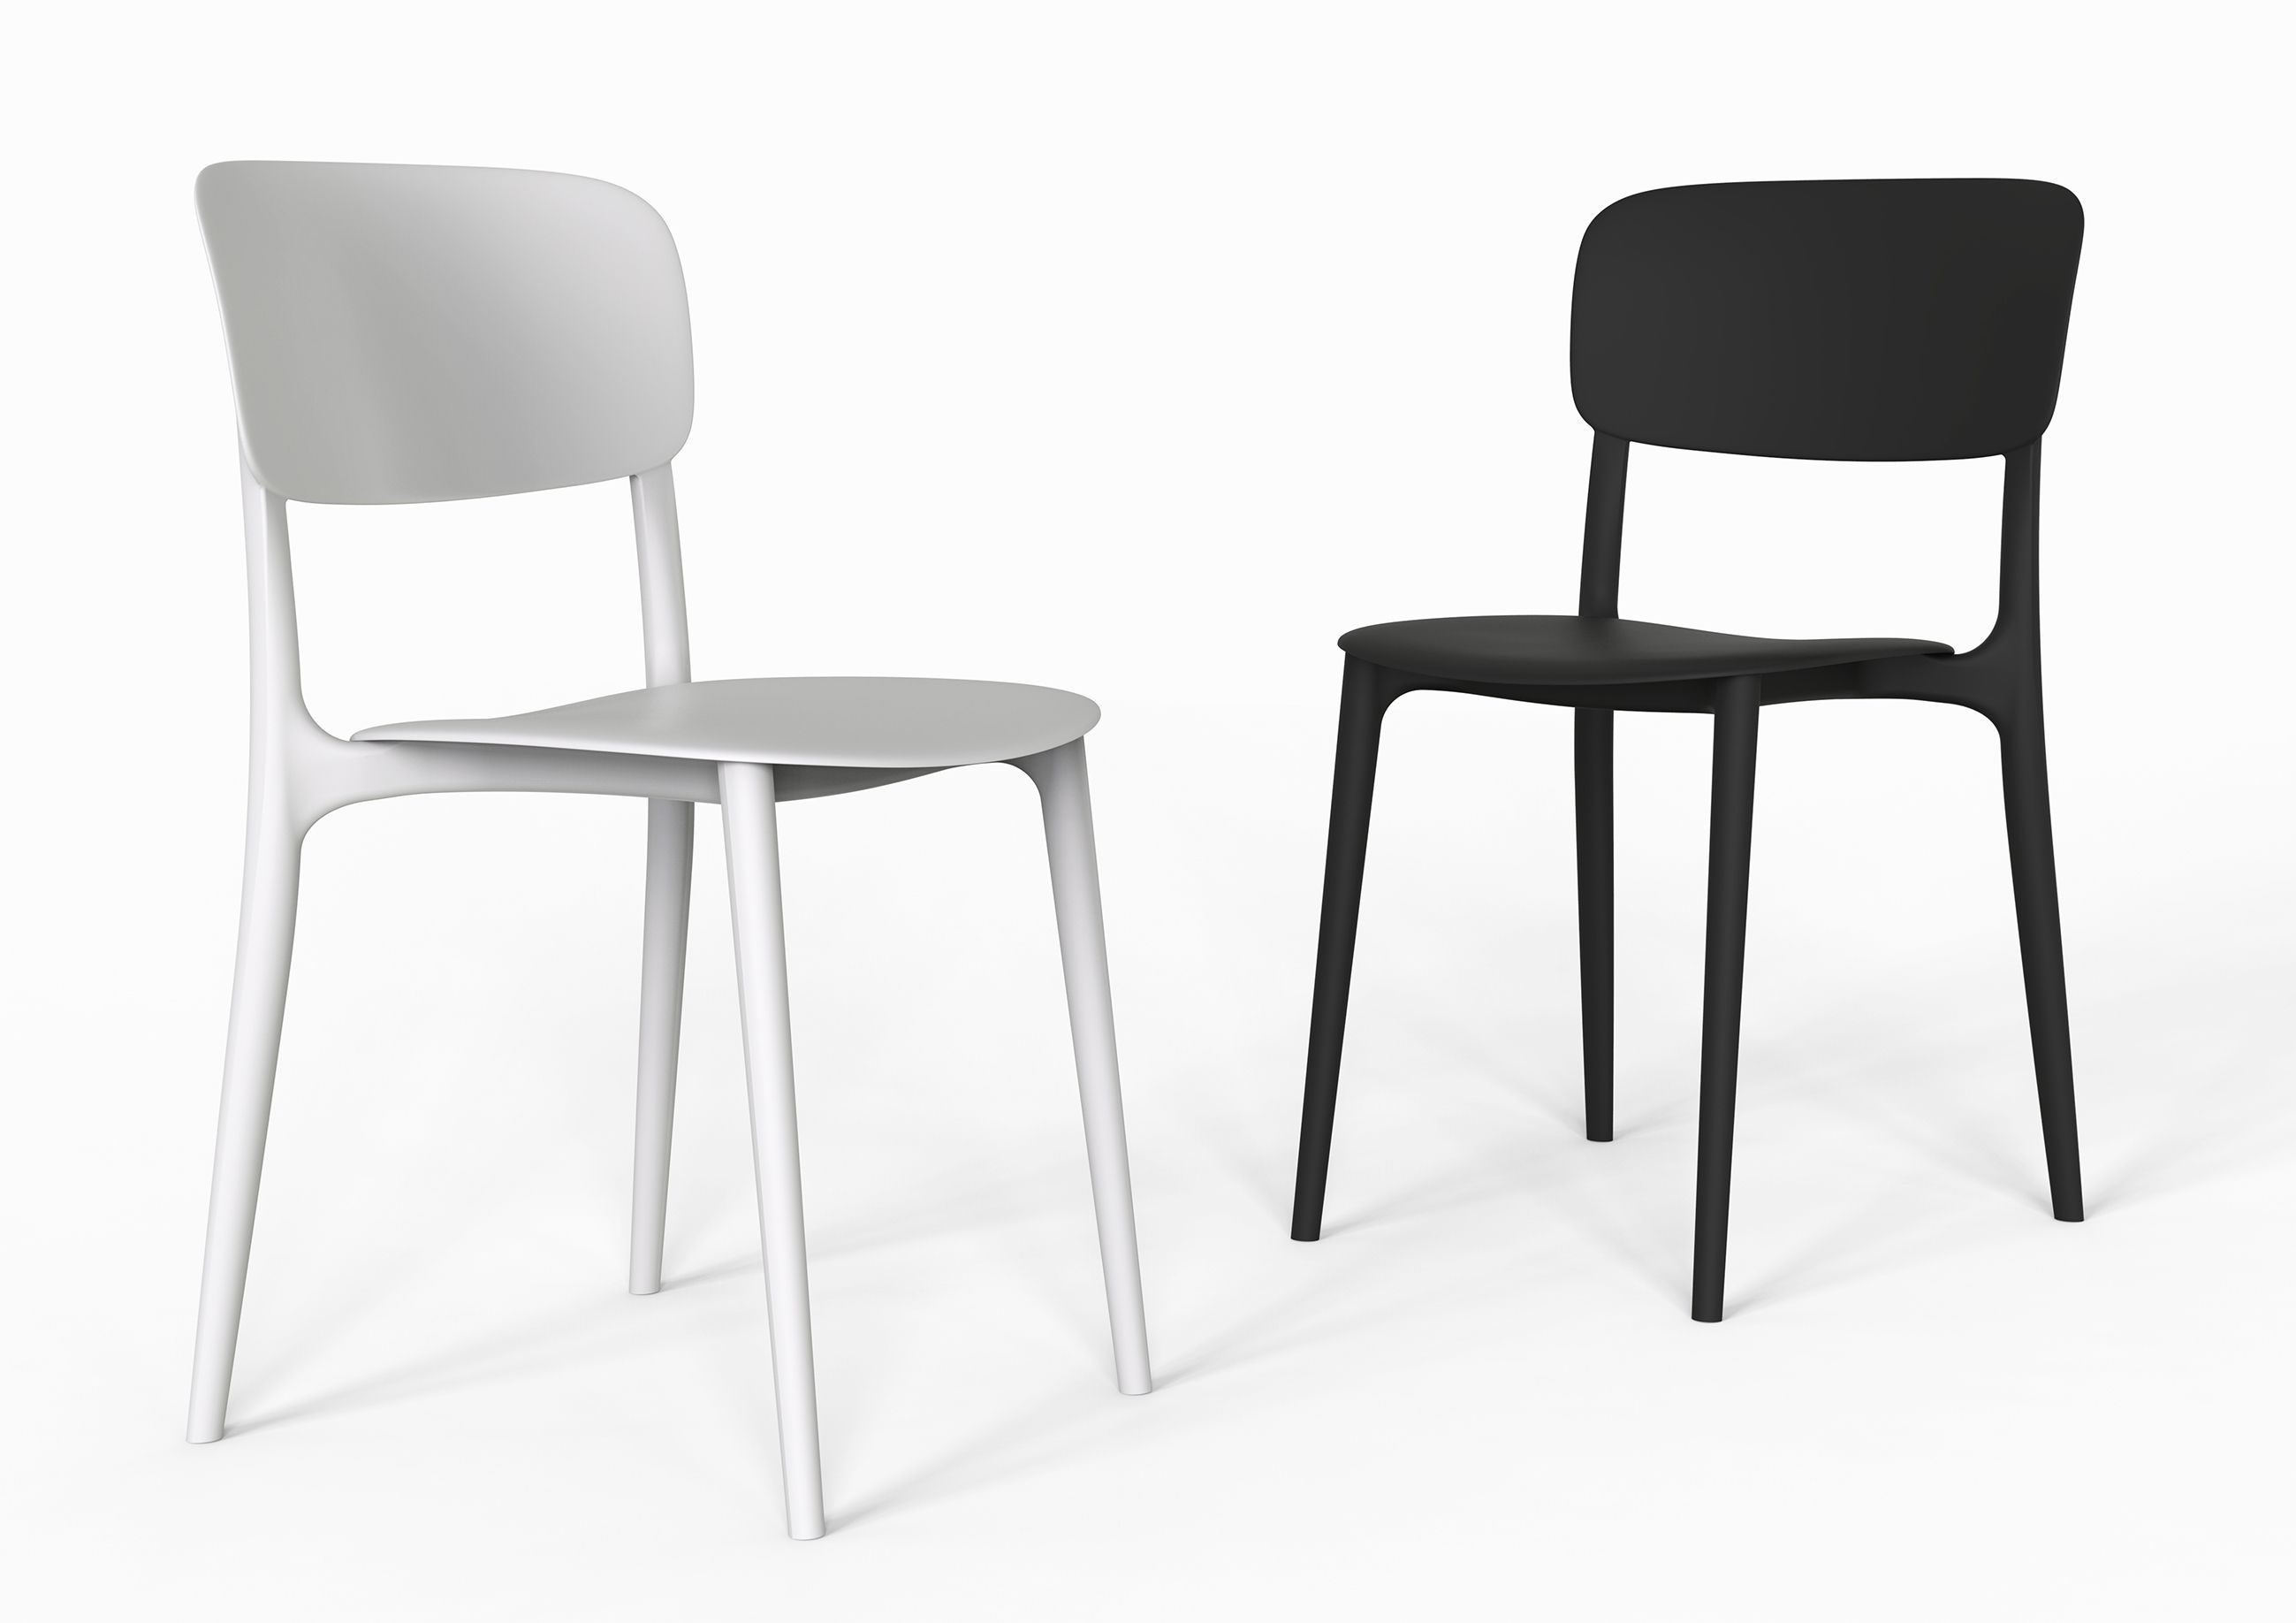 Calligaris Liberty Chairs Classic And Stylish Sedie